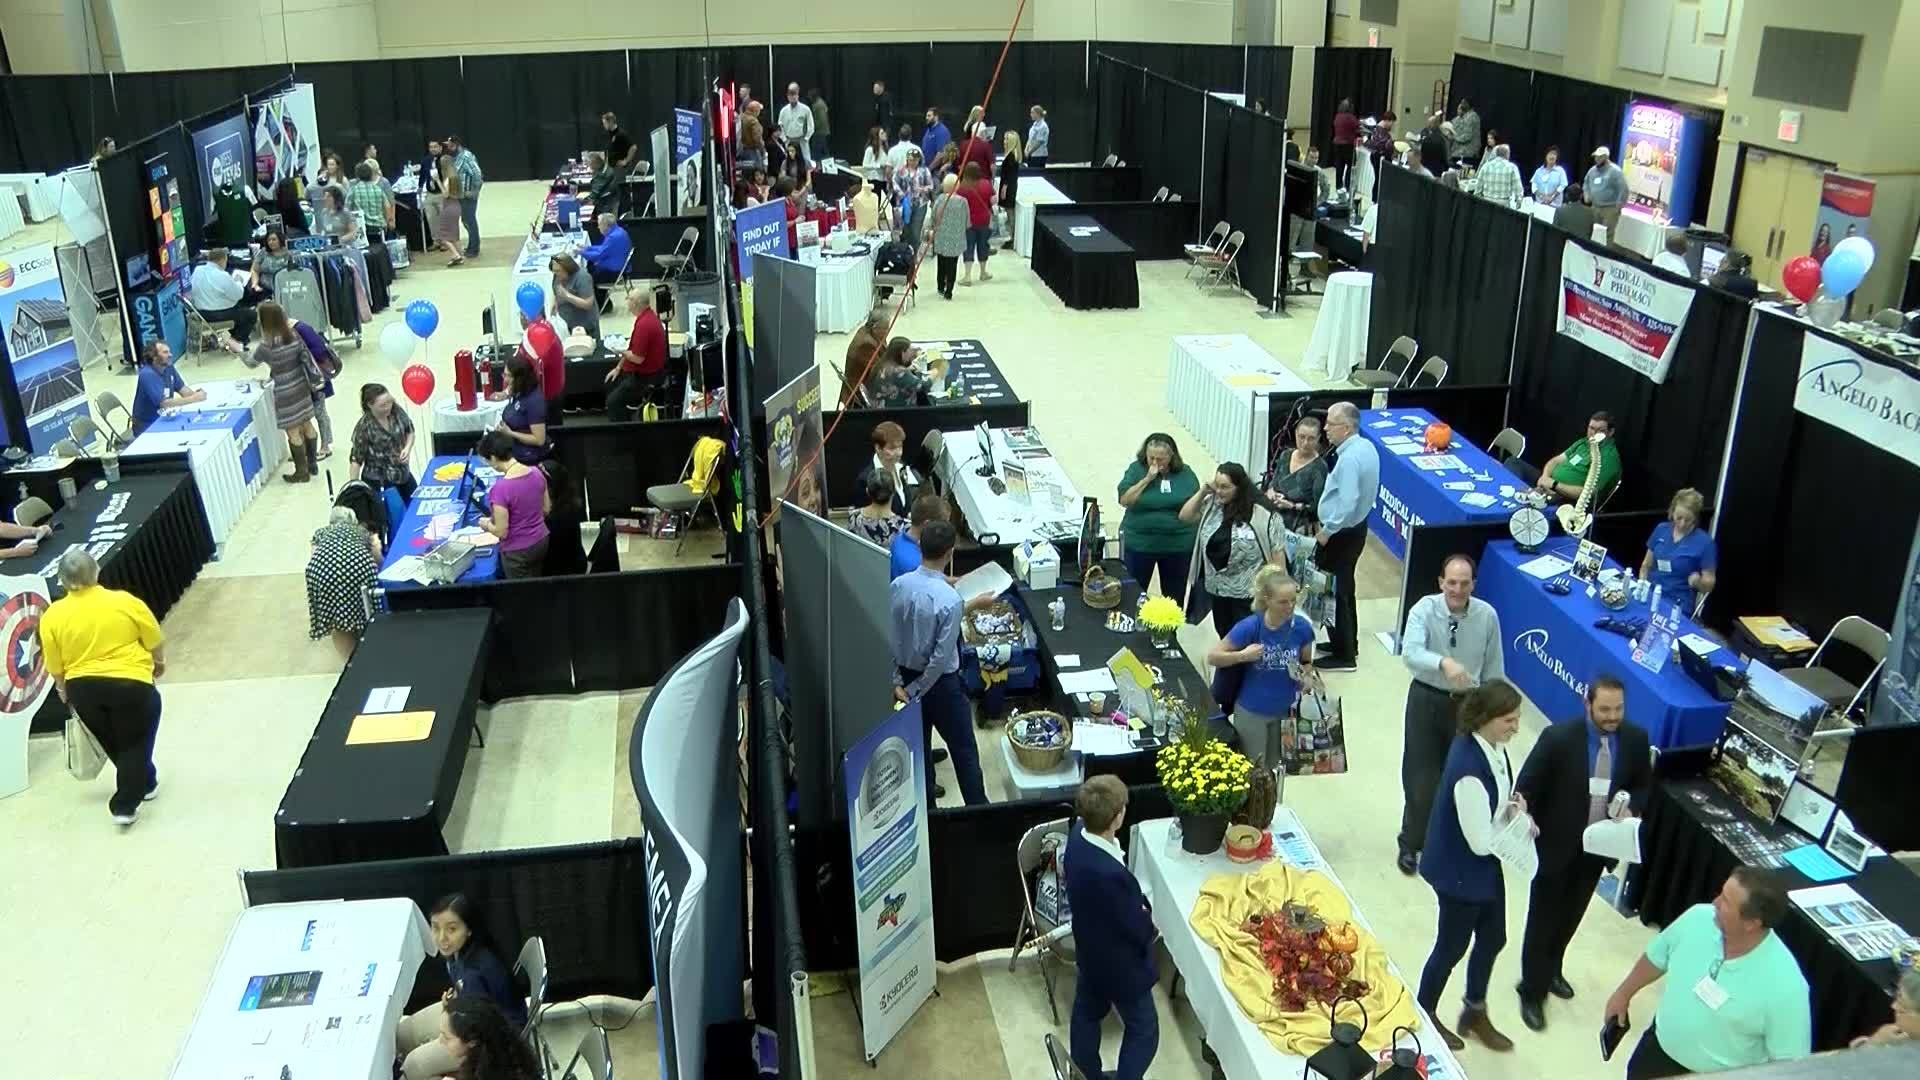 BUSINESS_EXPO_0_20180927234223